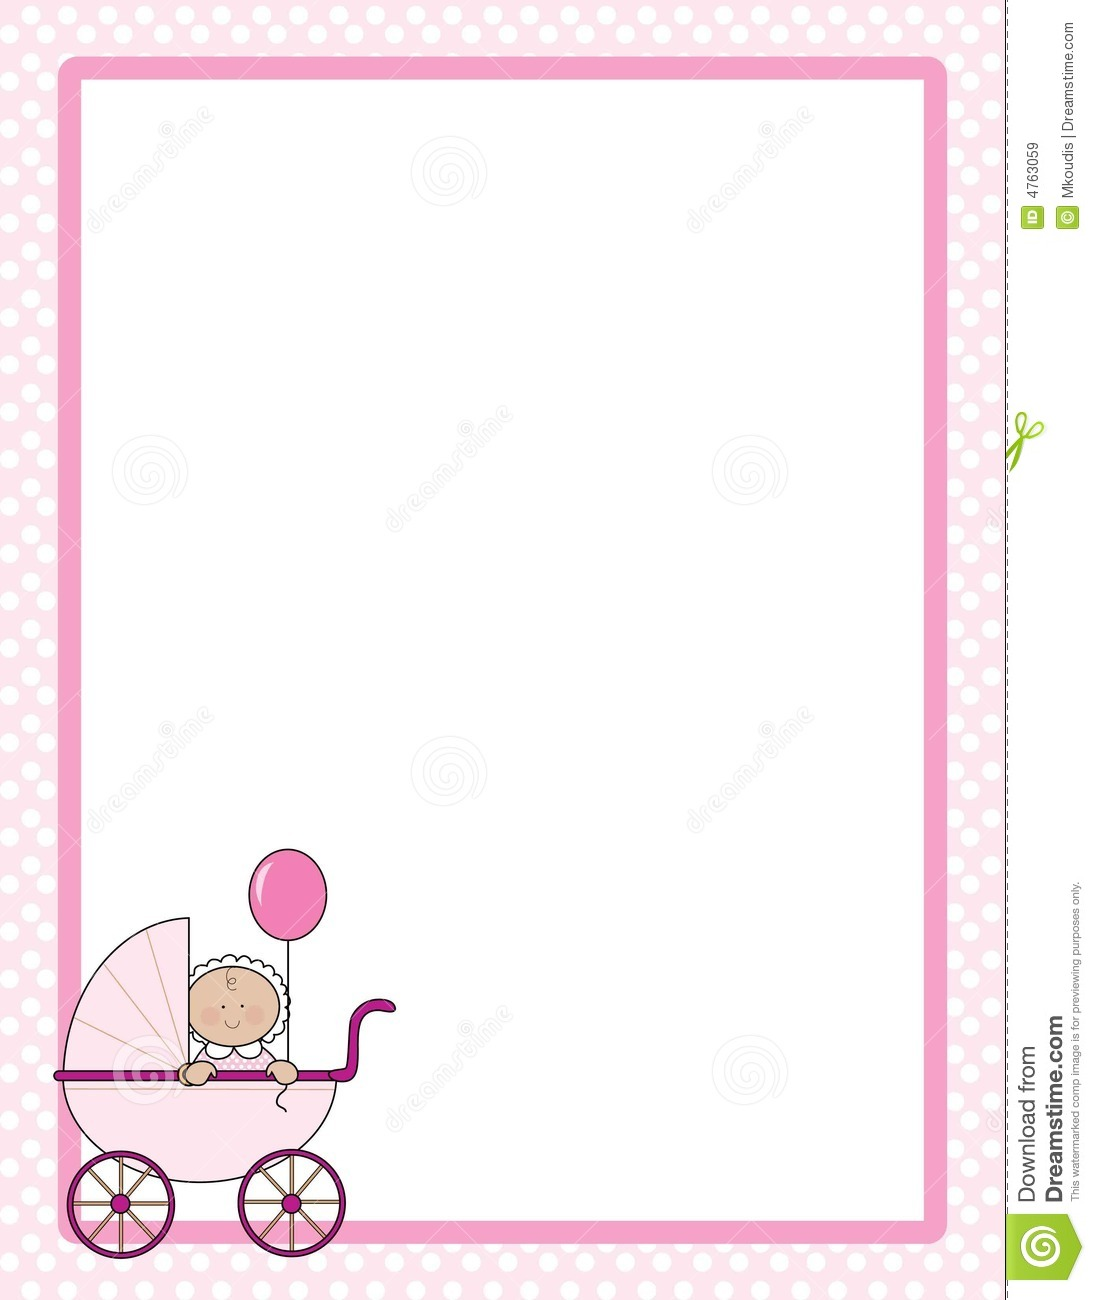 Clipart baby girl borders clipart library download Baby girl clip art border - ClipartFest clipart library download